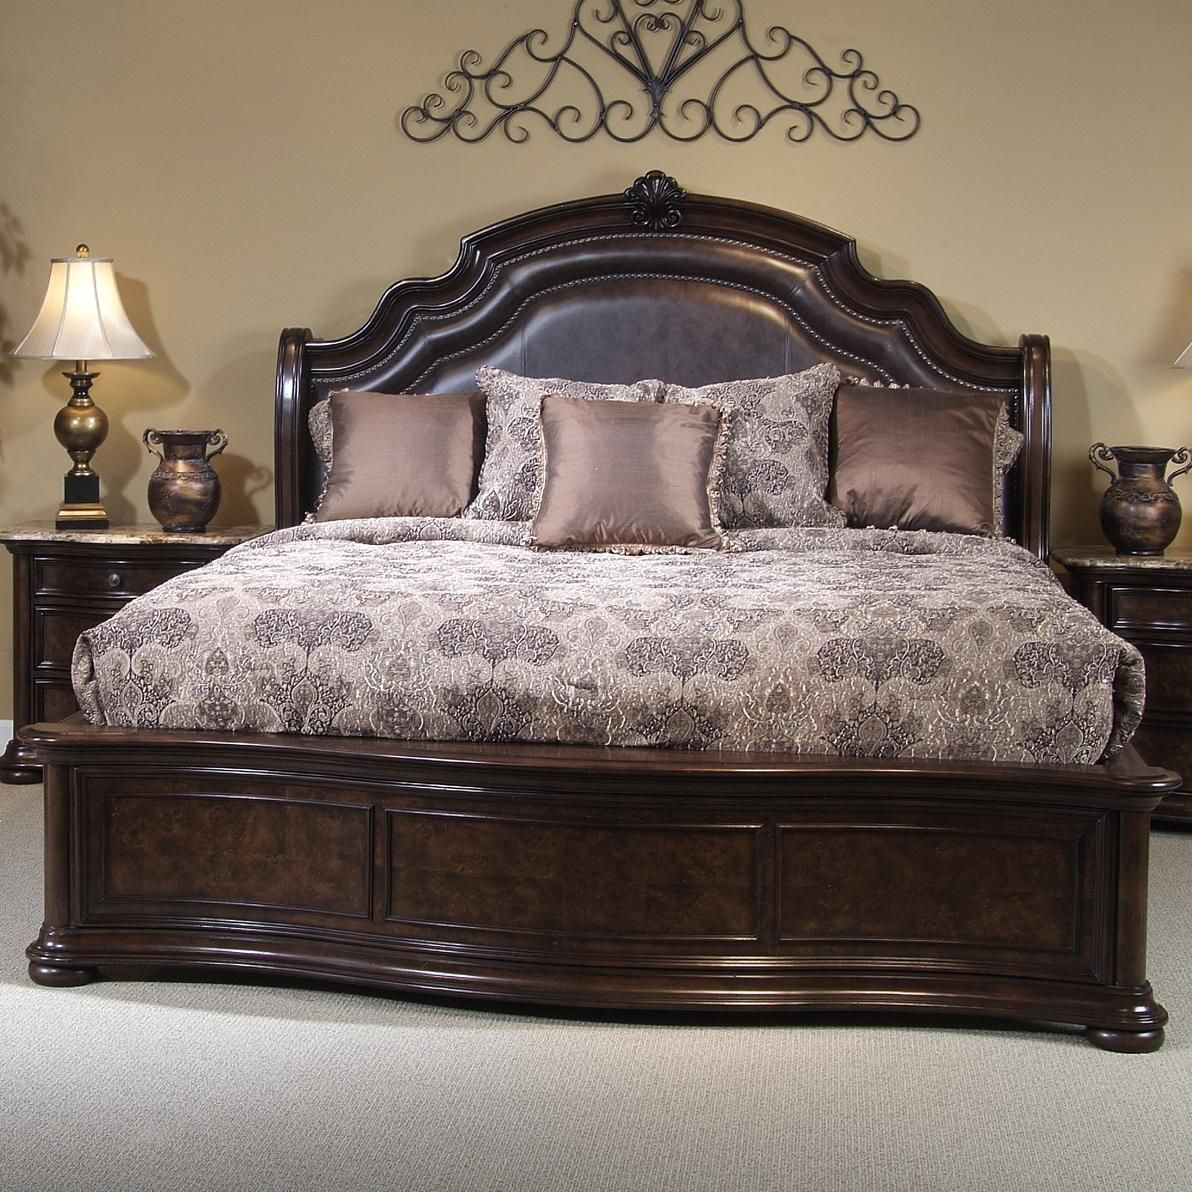 Le Grande Queen Platform Bed by Liberty Furniture Dream Home ...